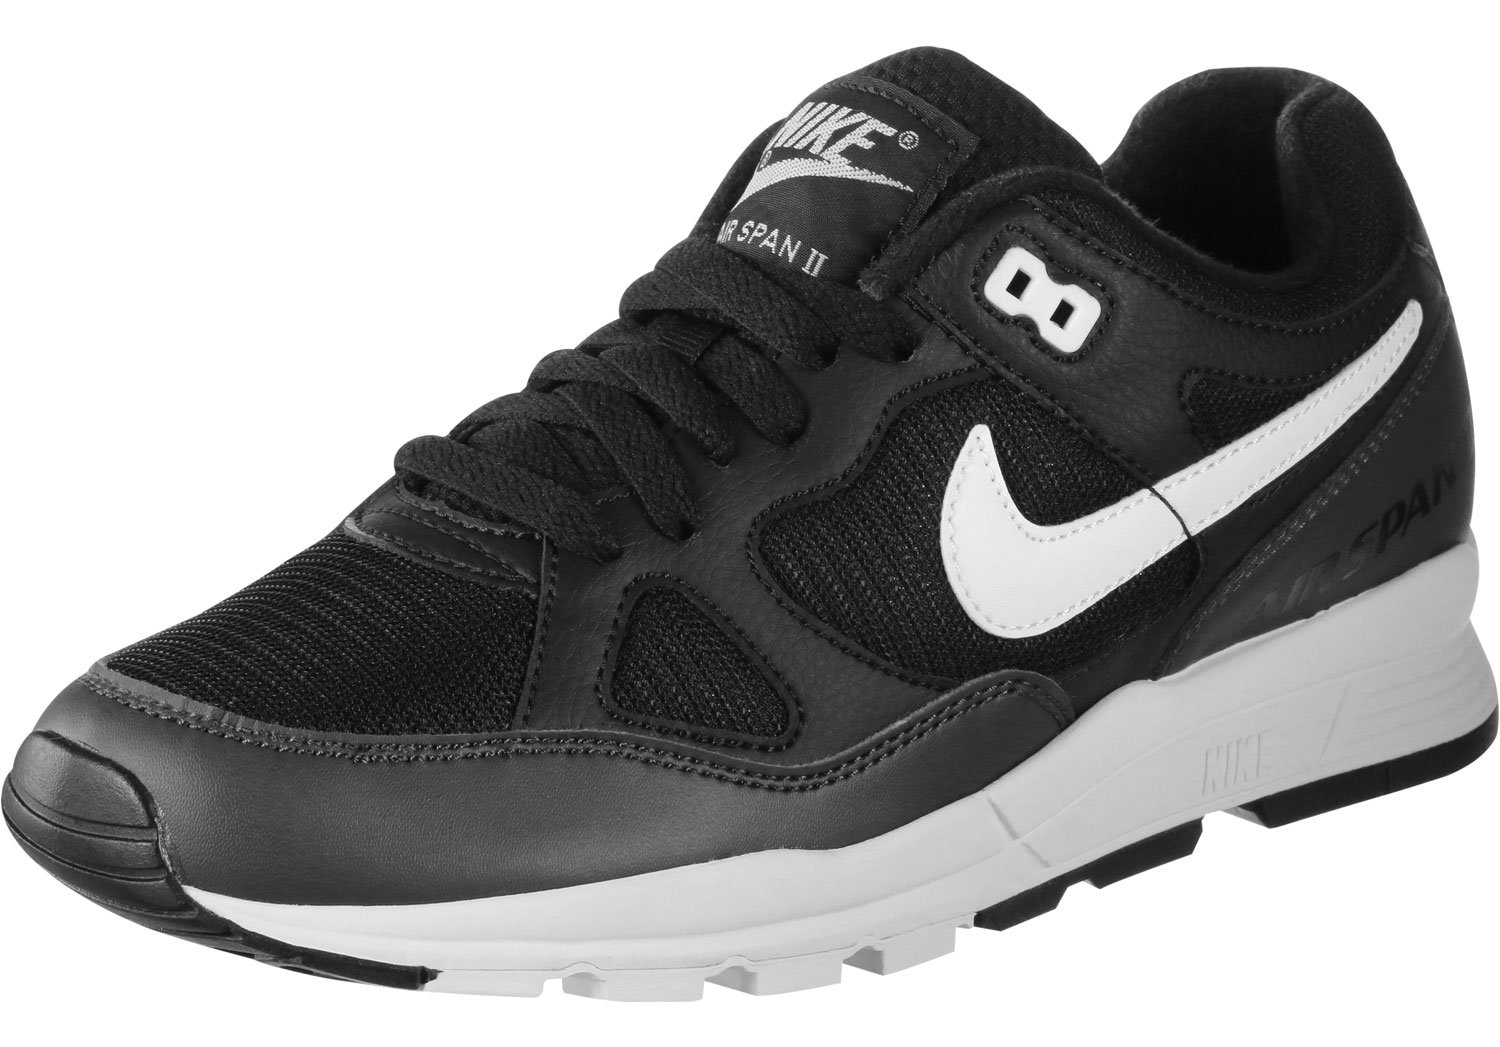 Sollozos Accor Obstinado  Nike Air Span II - Sneakers Low at Stylefile